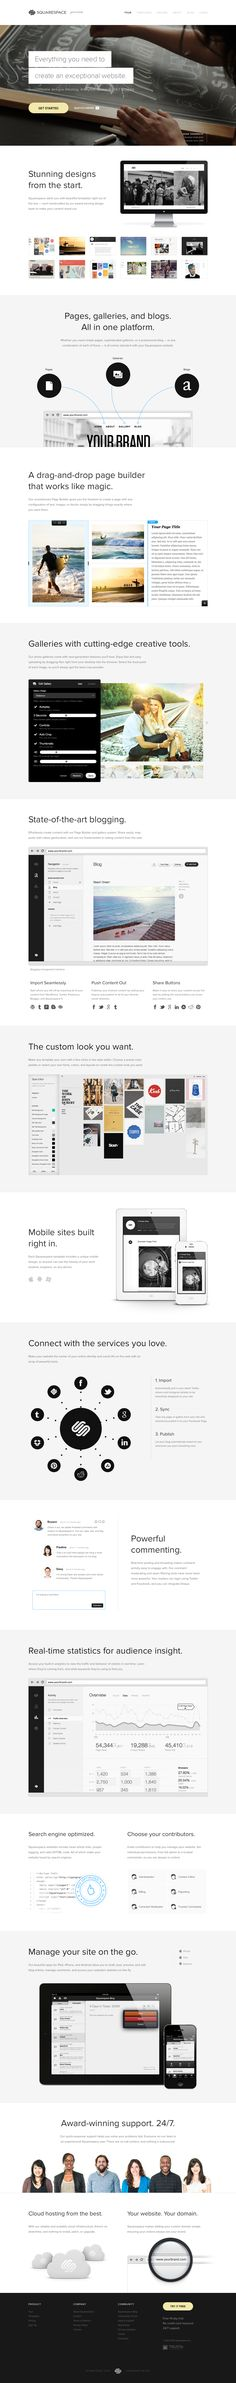 Web design layouts and inspiration Web Design Mobile, Web Ui Design, Page Design, Blog Design, Ecommerce, Responsive Layout, Layout Design, Web Layout, Gui Interface